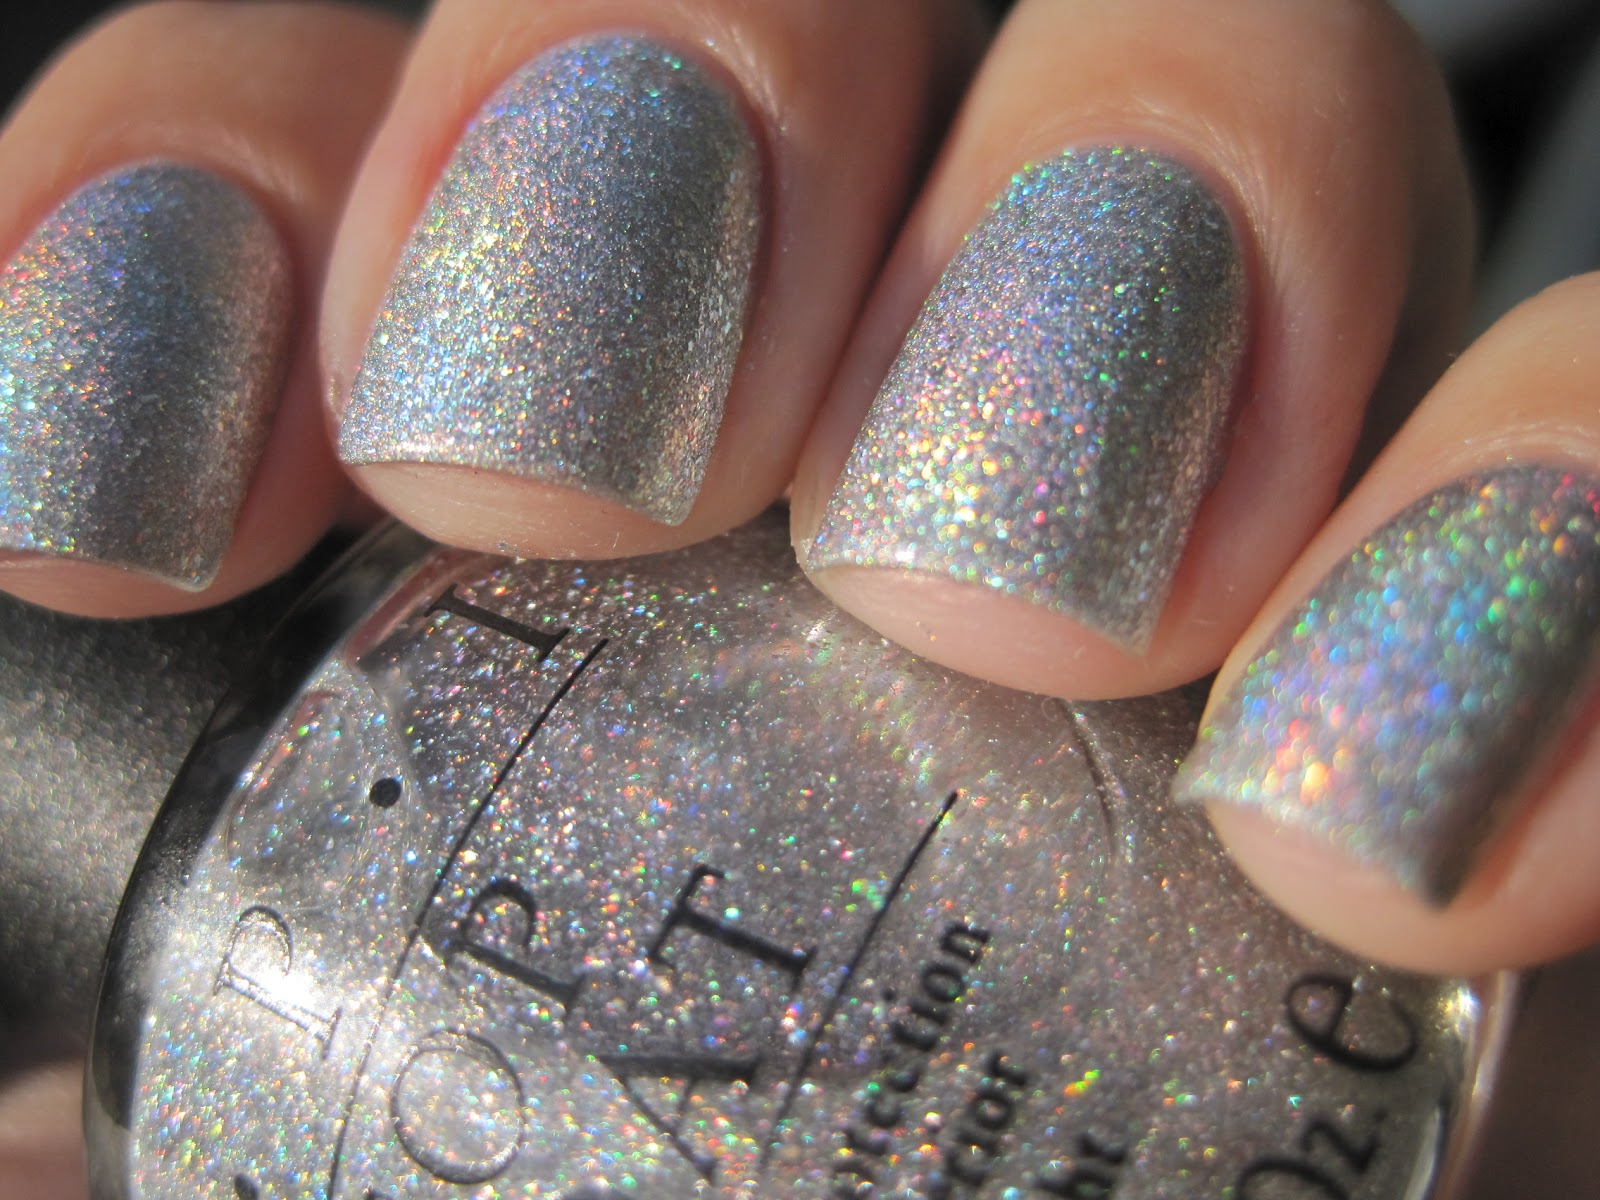 Sparkly Vernis: OPI Paris Couture For Sure another one from the vault